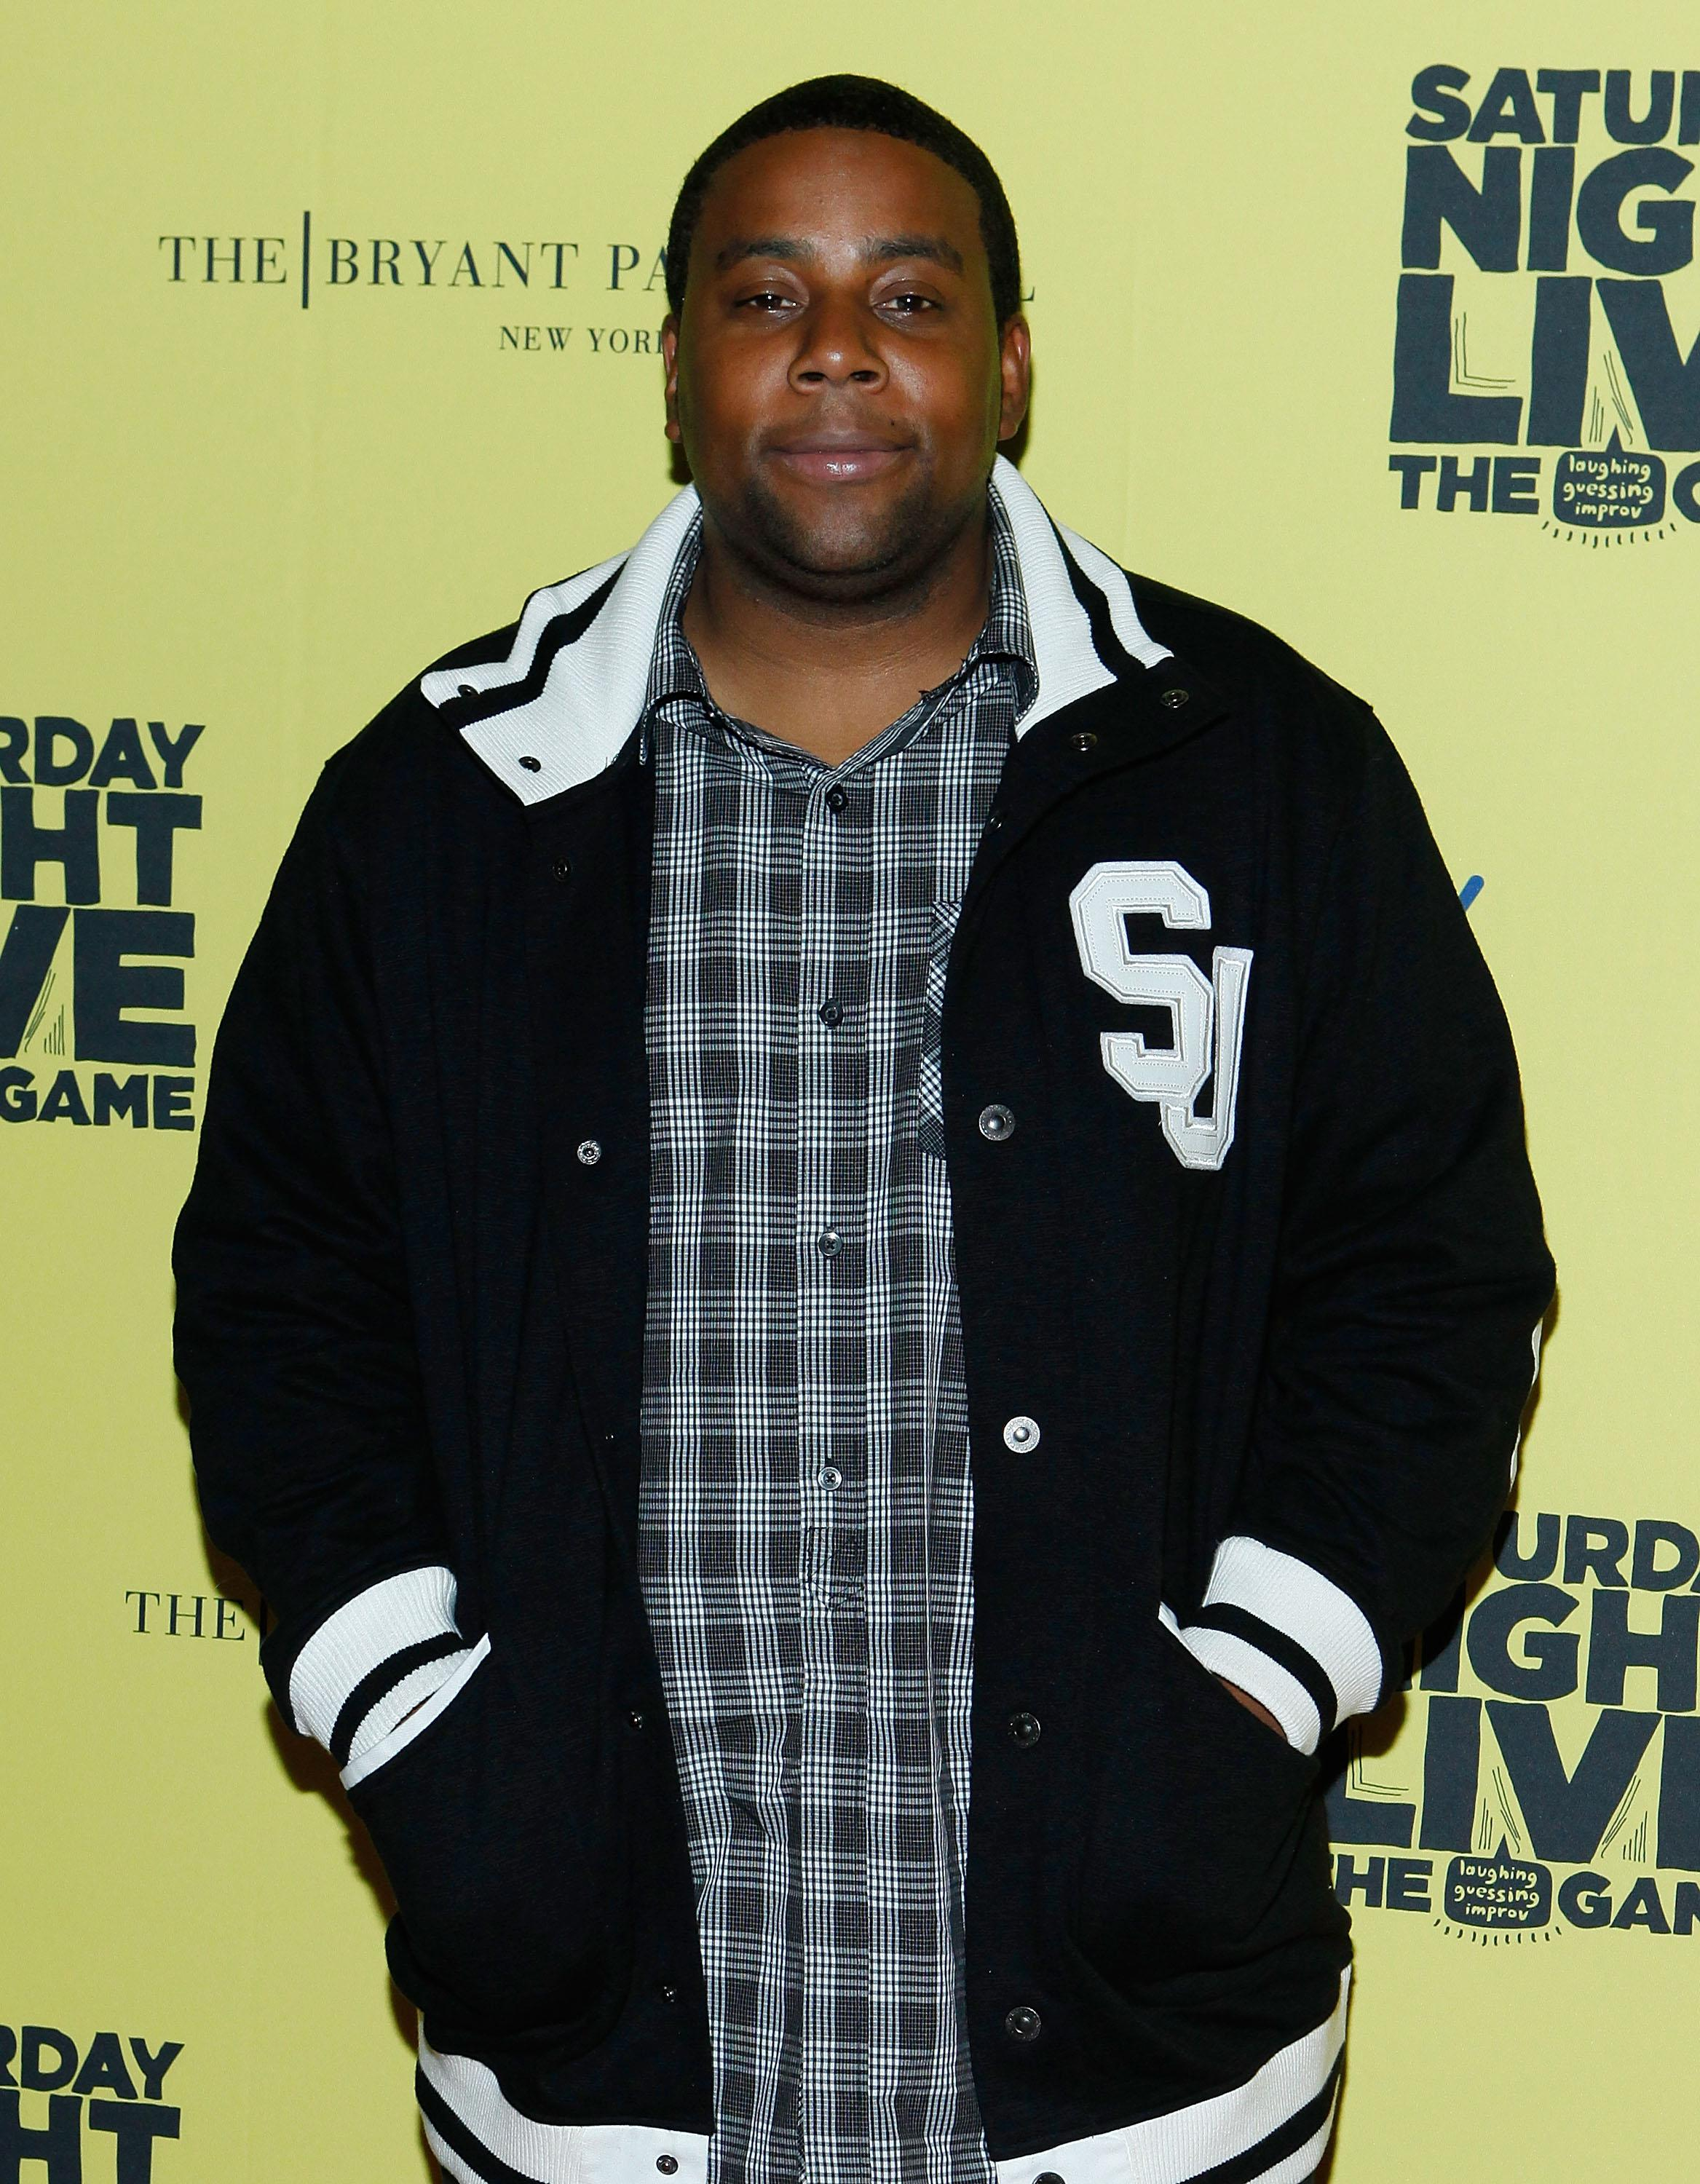 'Saturday Night Live - The Game' Launch Party